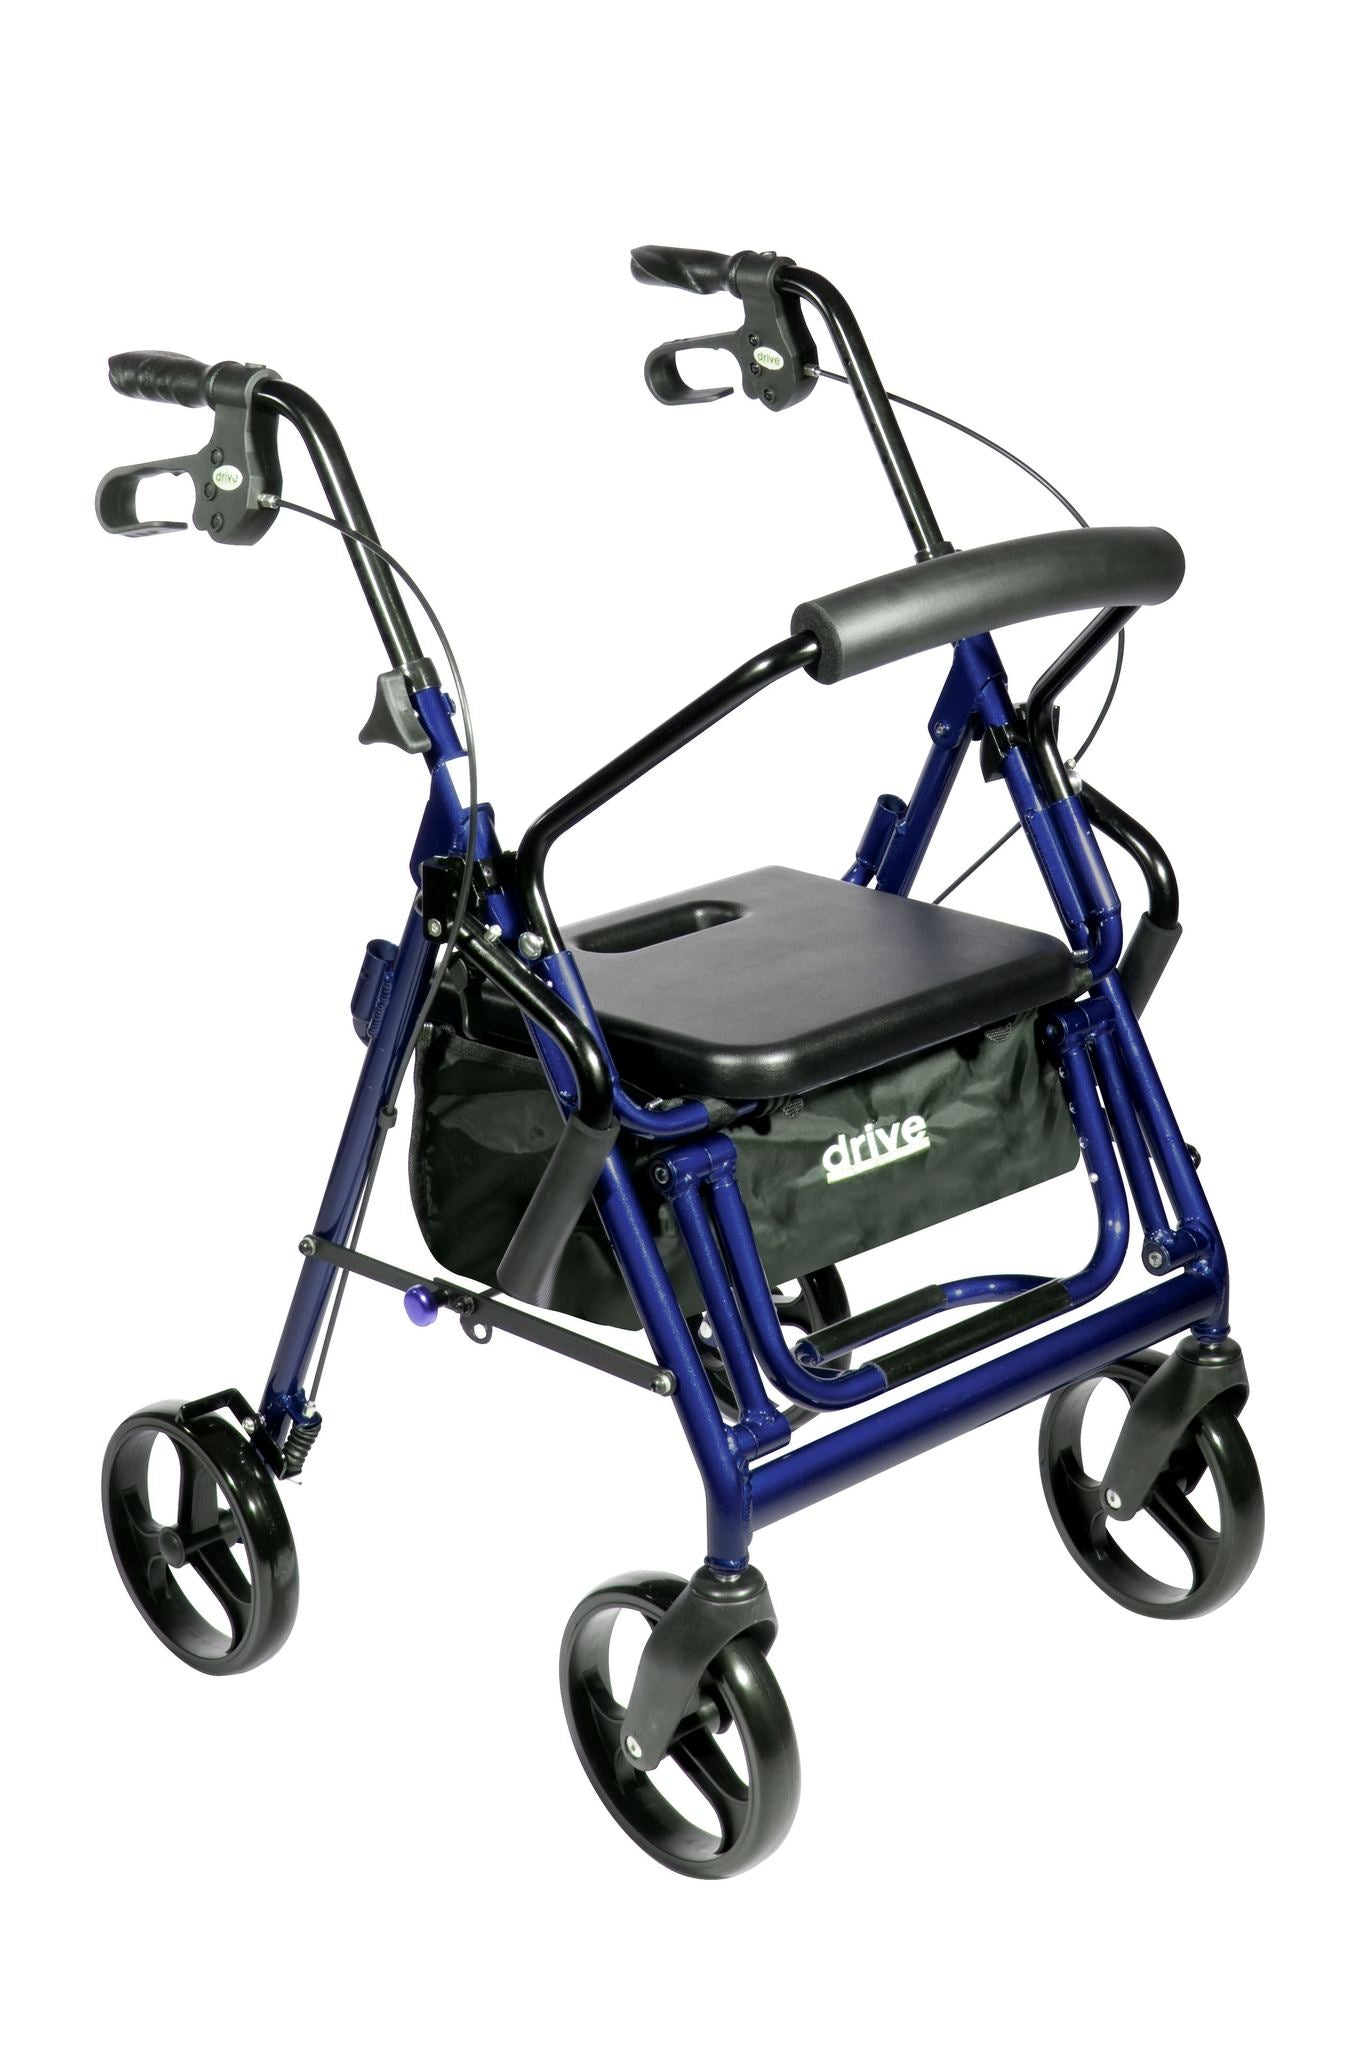 Parts for Drive Duet Rollator/Transport Chair (Model: 795)